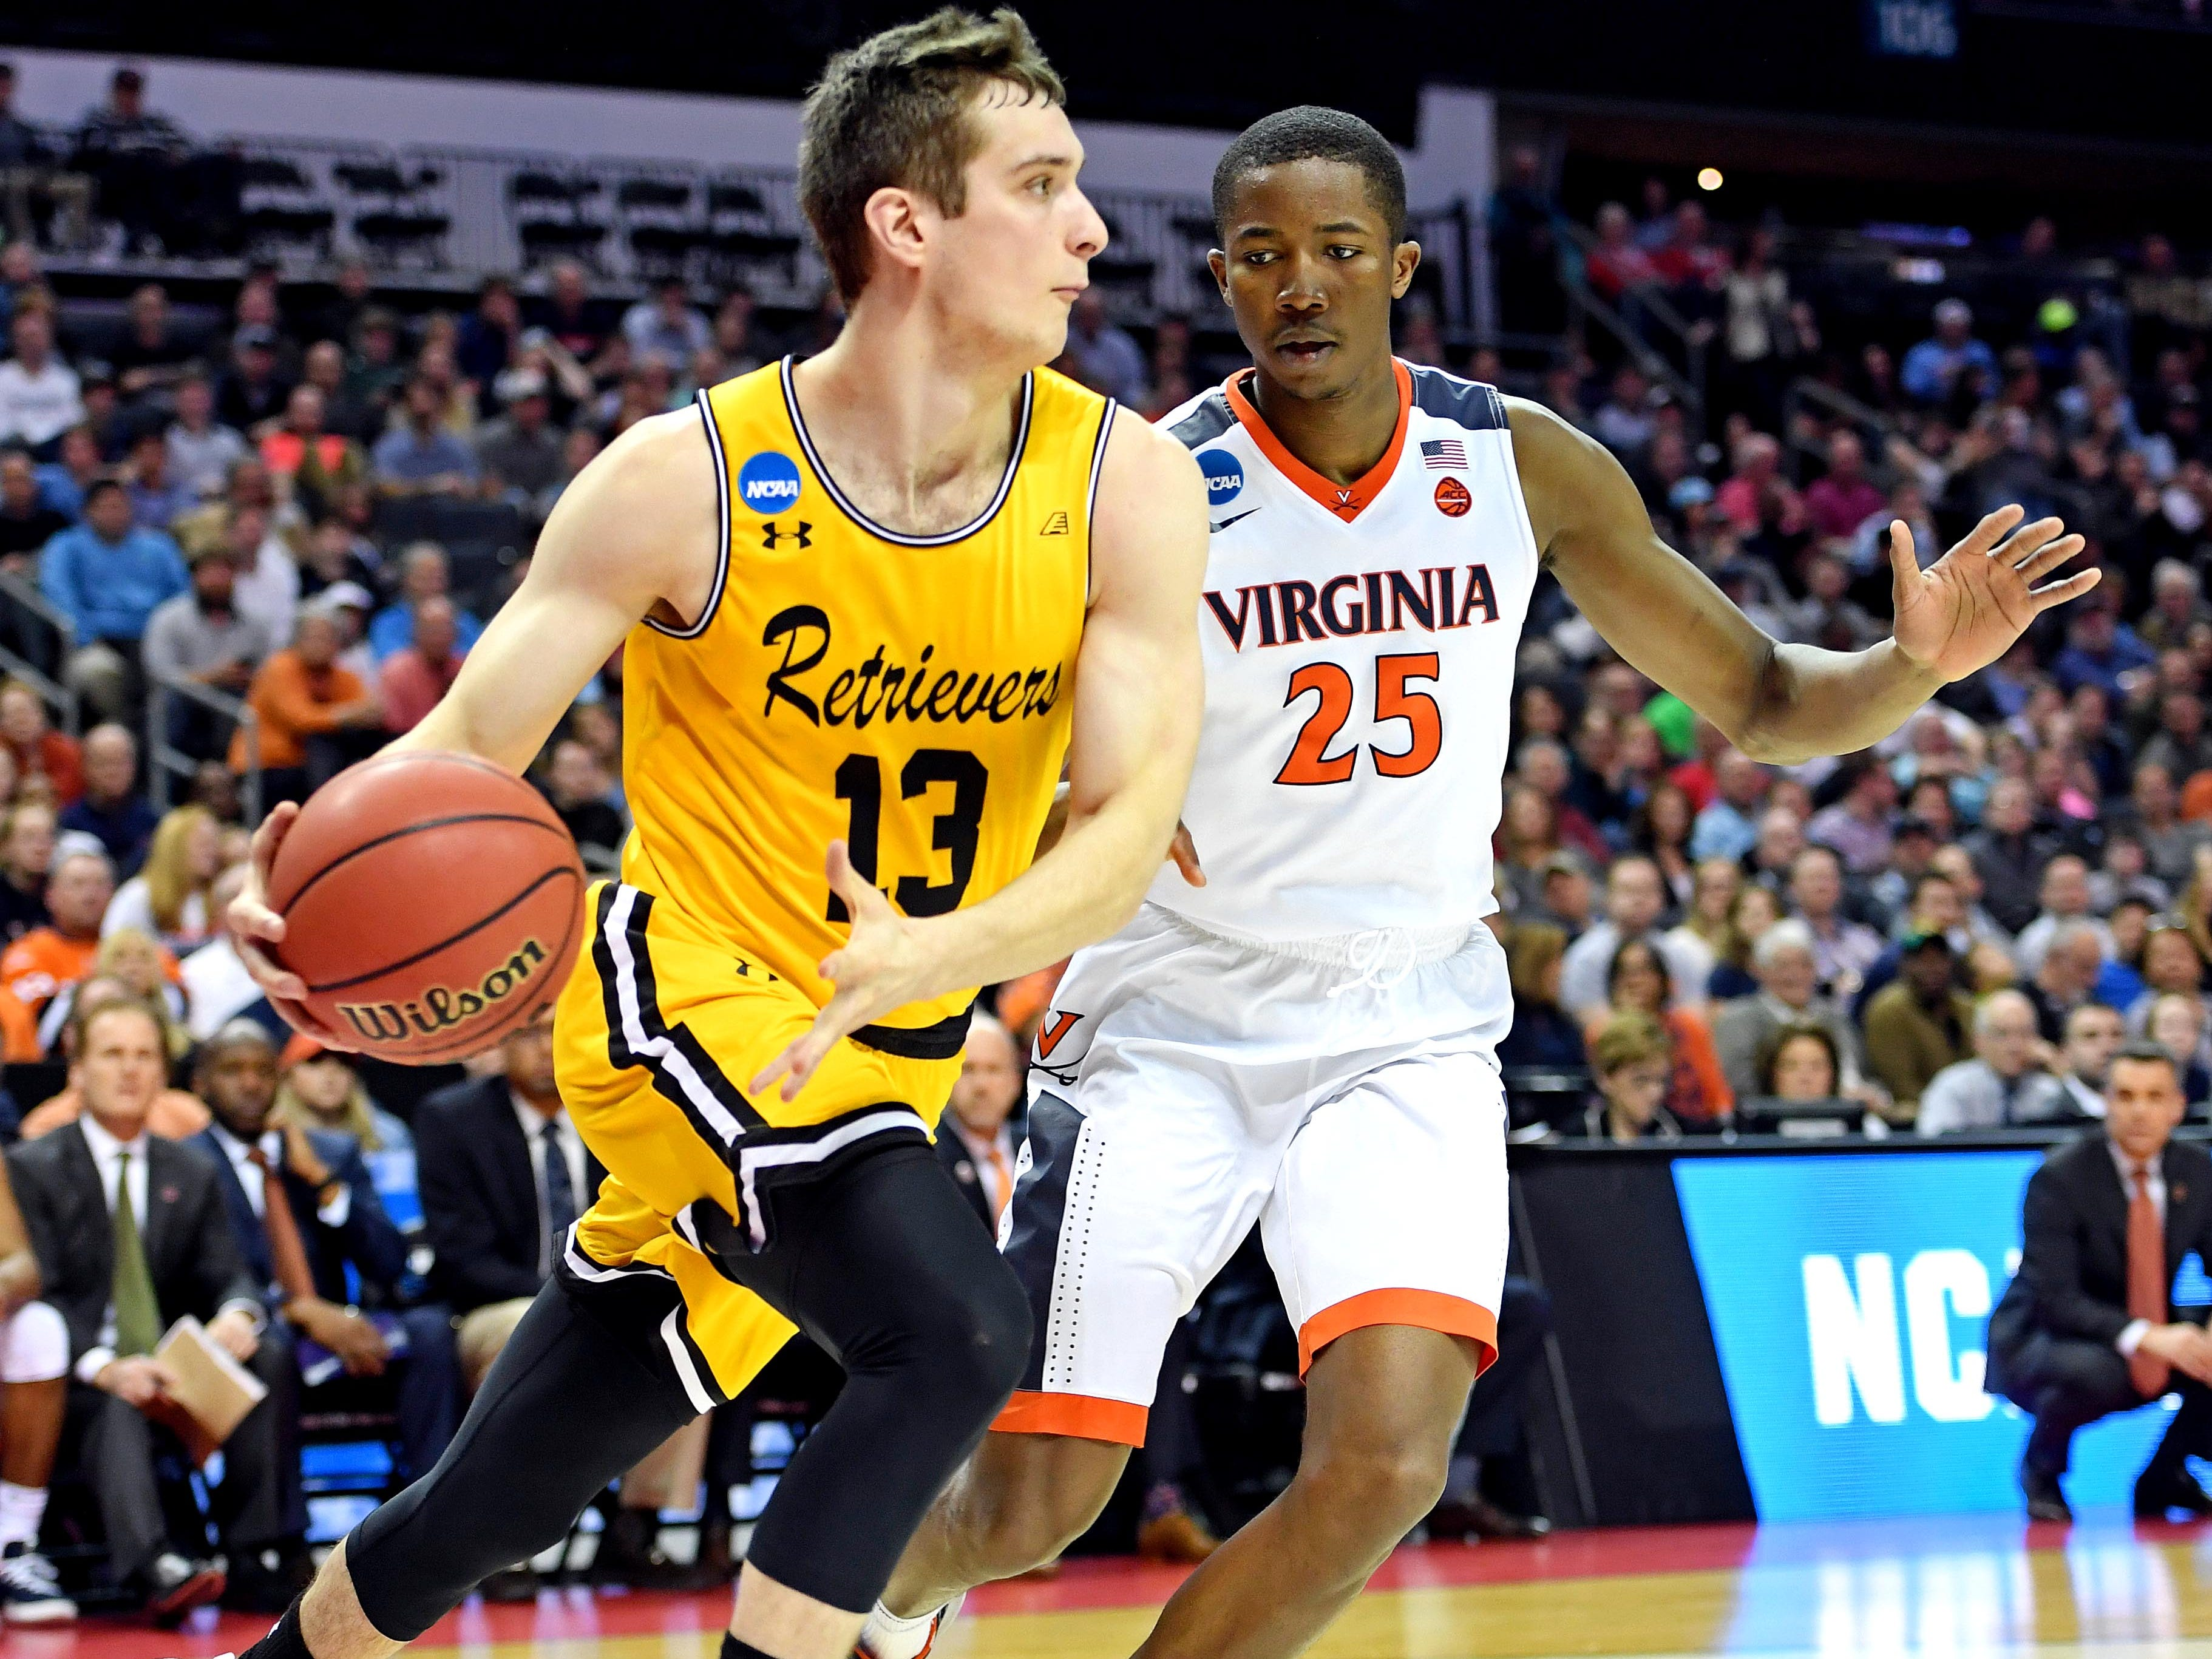 Mar 16, 2018; Charlotte, NC, USA; UMBC Retrievers forward Joe Sherburne (13) drives to the basket against Virginia Cavaliers forward Mamadi Diakite (25) during the first half in the first round of the 2018 NCAA Tournament at Spectrum Center. Mandatory Credit: Bob Donnan-USA TODAY Sports